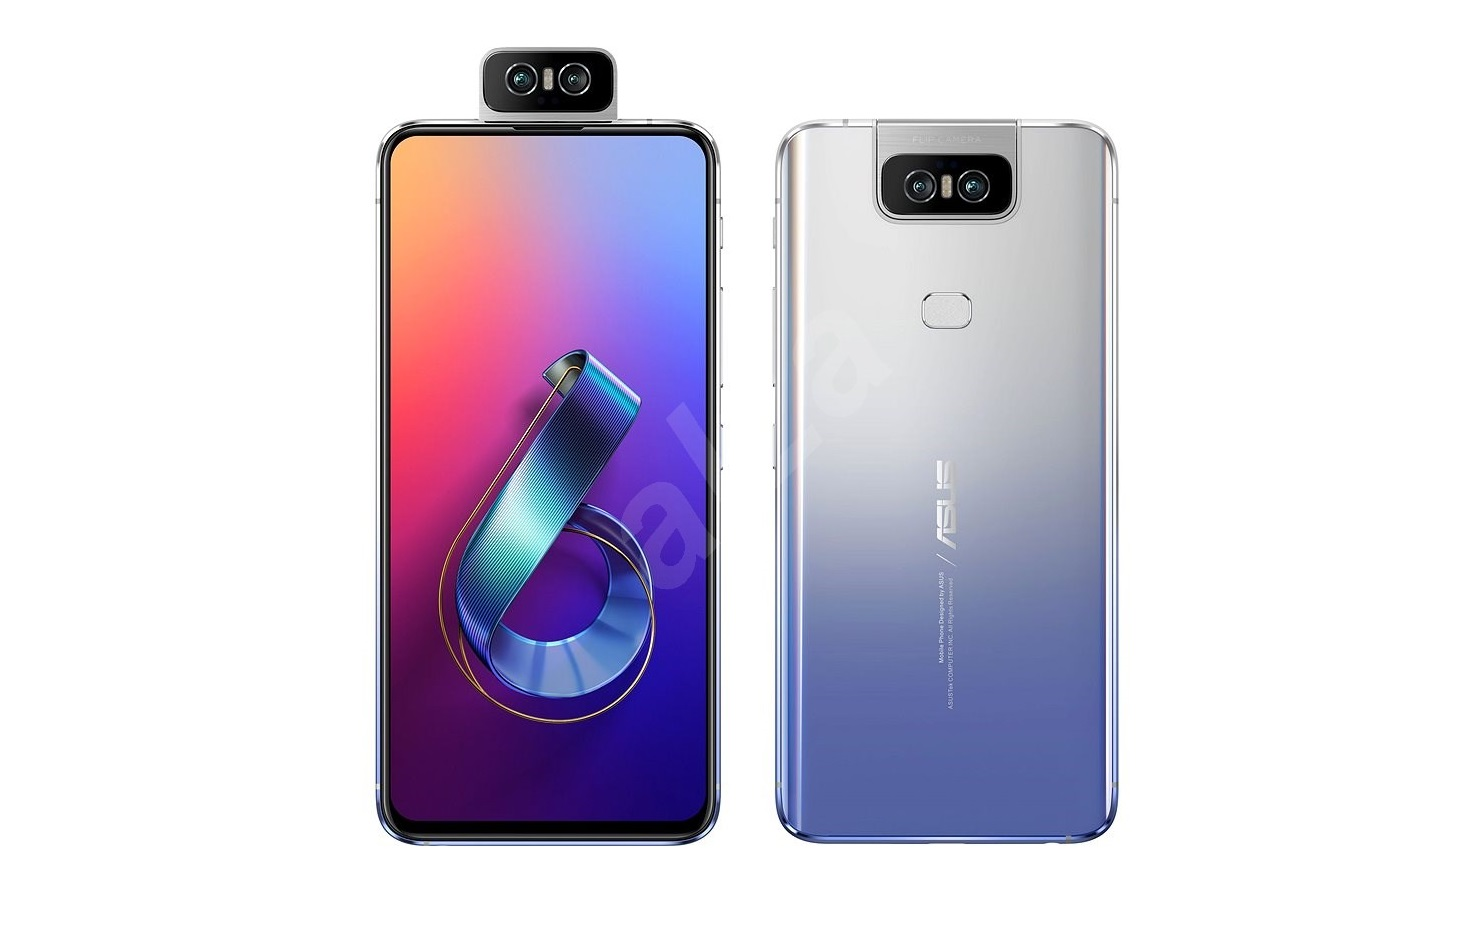 How to Root Asus Zenfone 6 ZS630KL with Magisk without TWRP